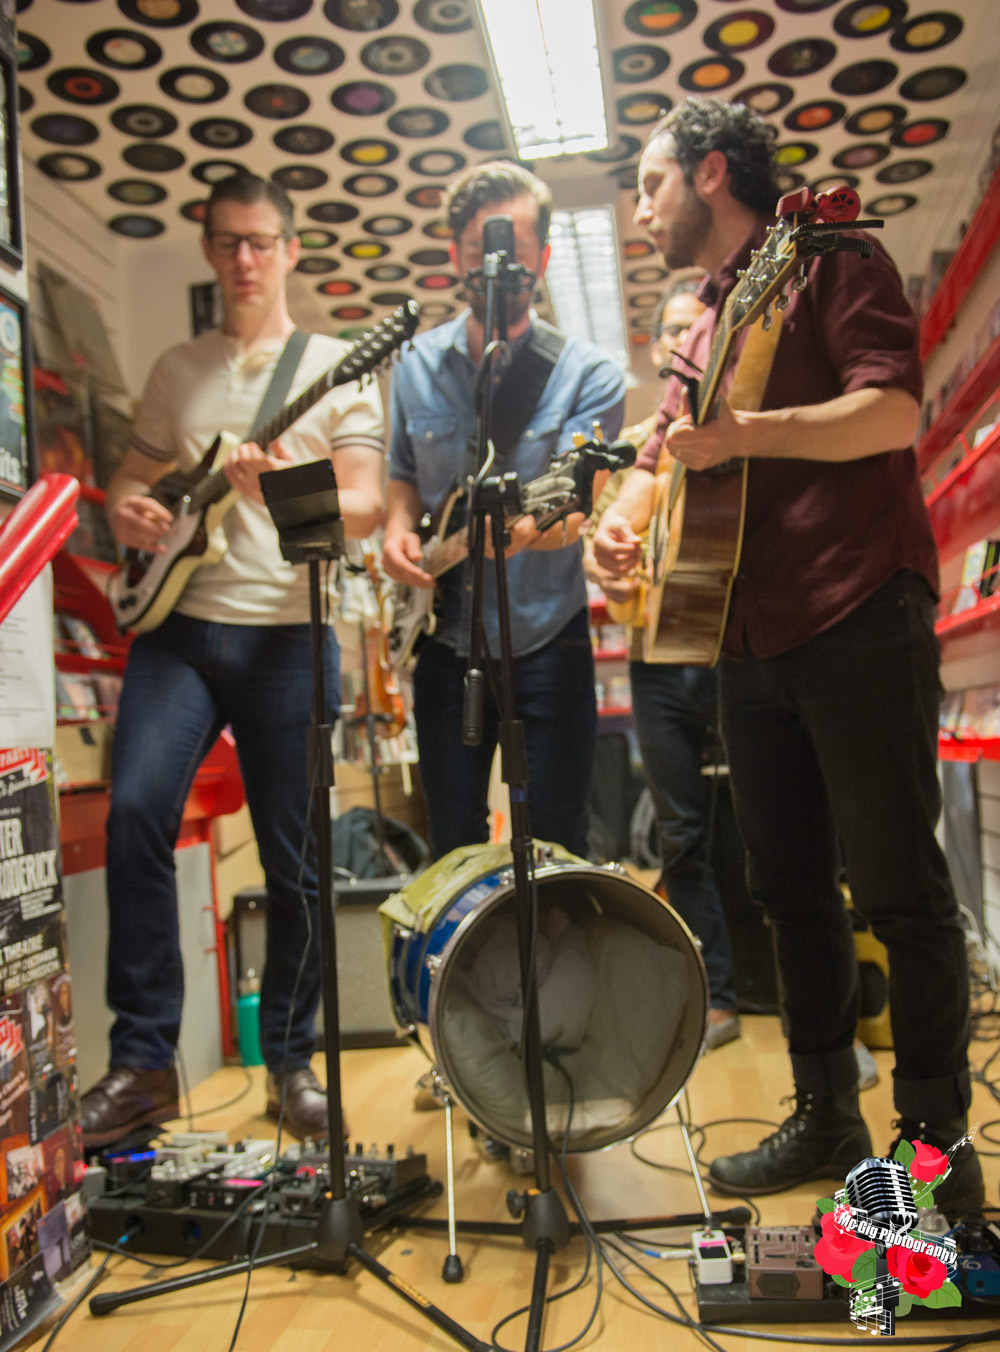 Darlingside, live in Rollercoaster Records on 6/5/18. Photo: Ian McDonnell/Mc Gig Photography